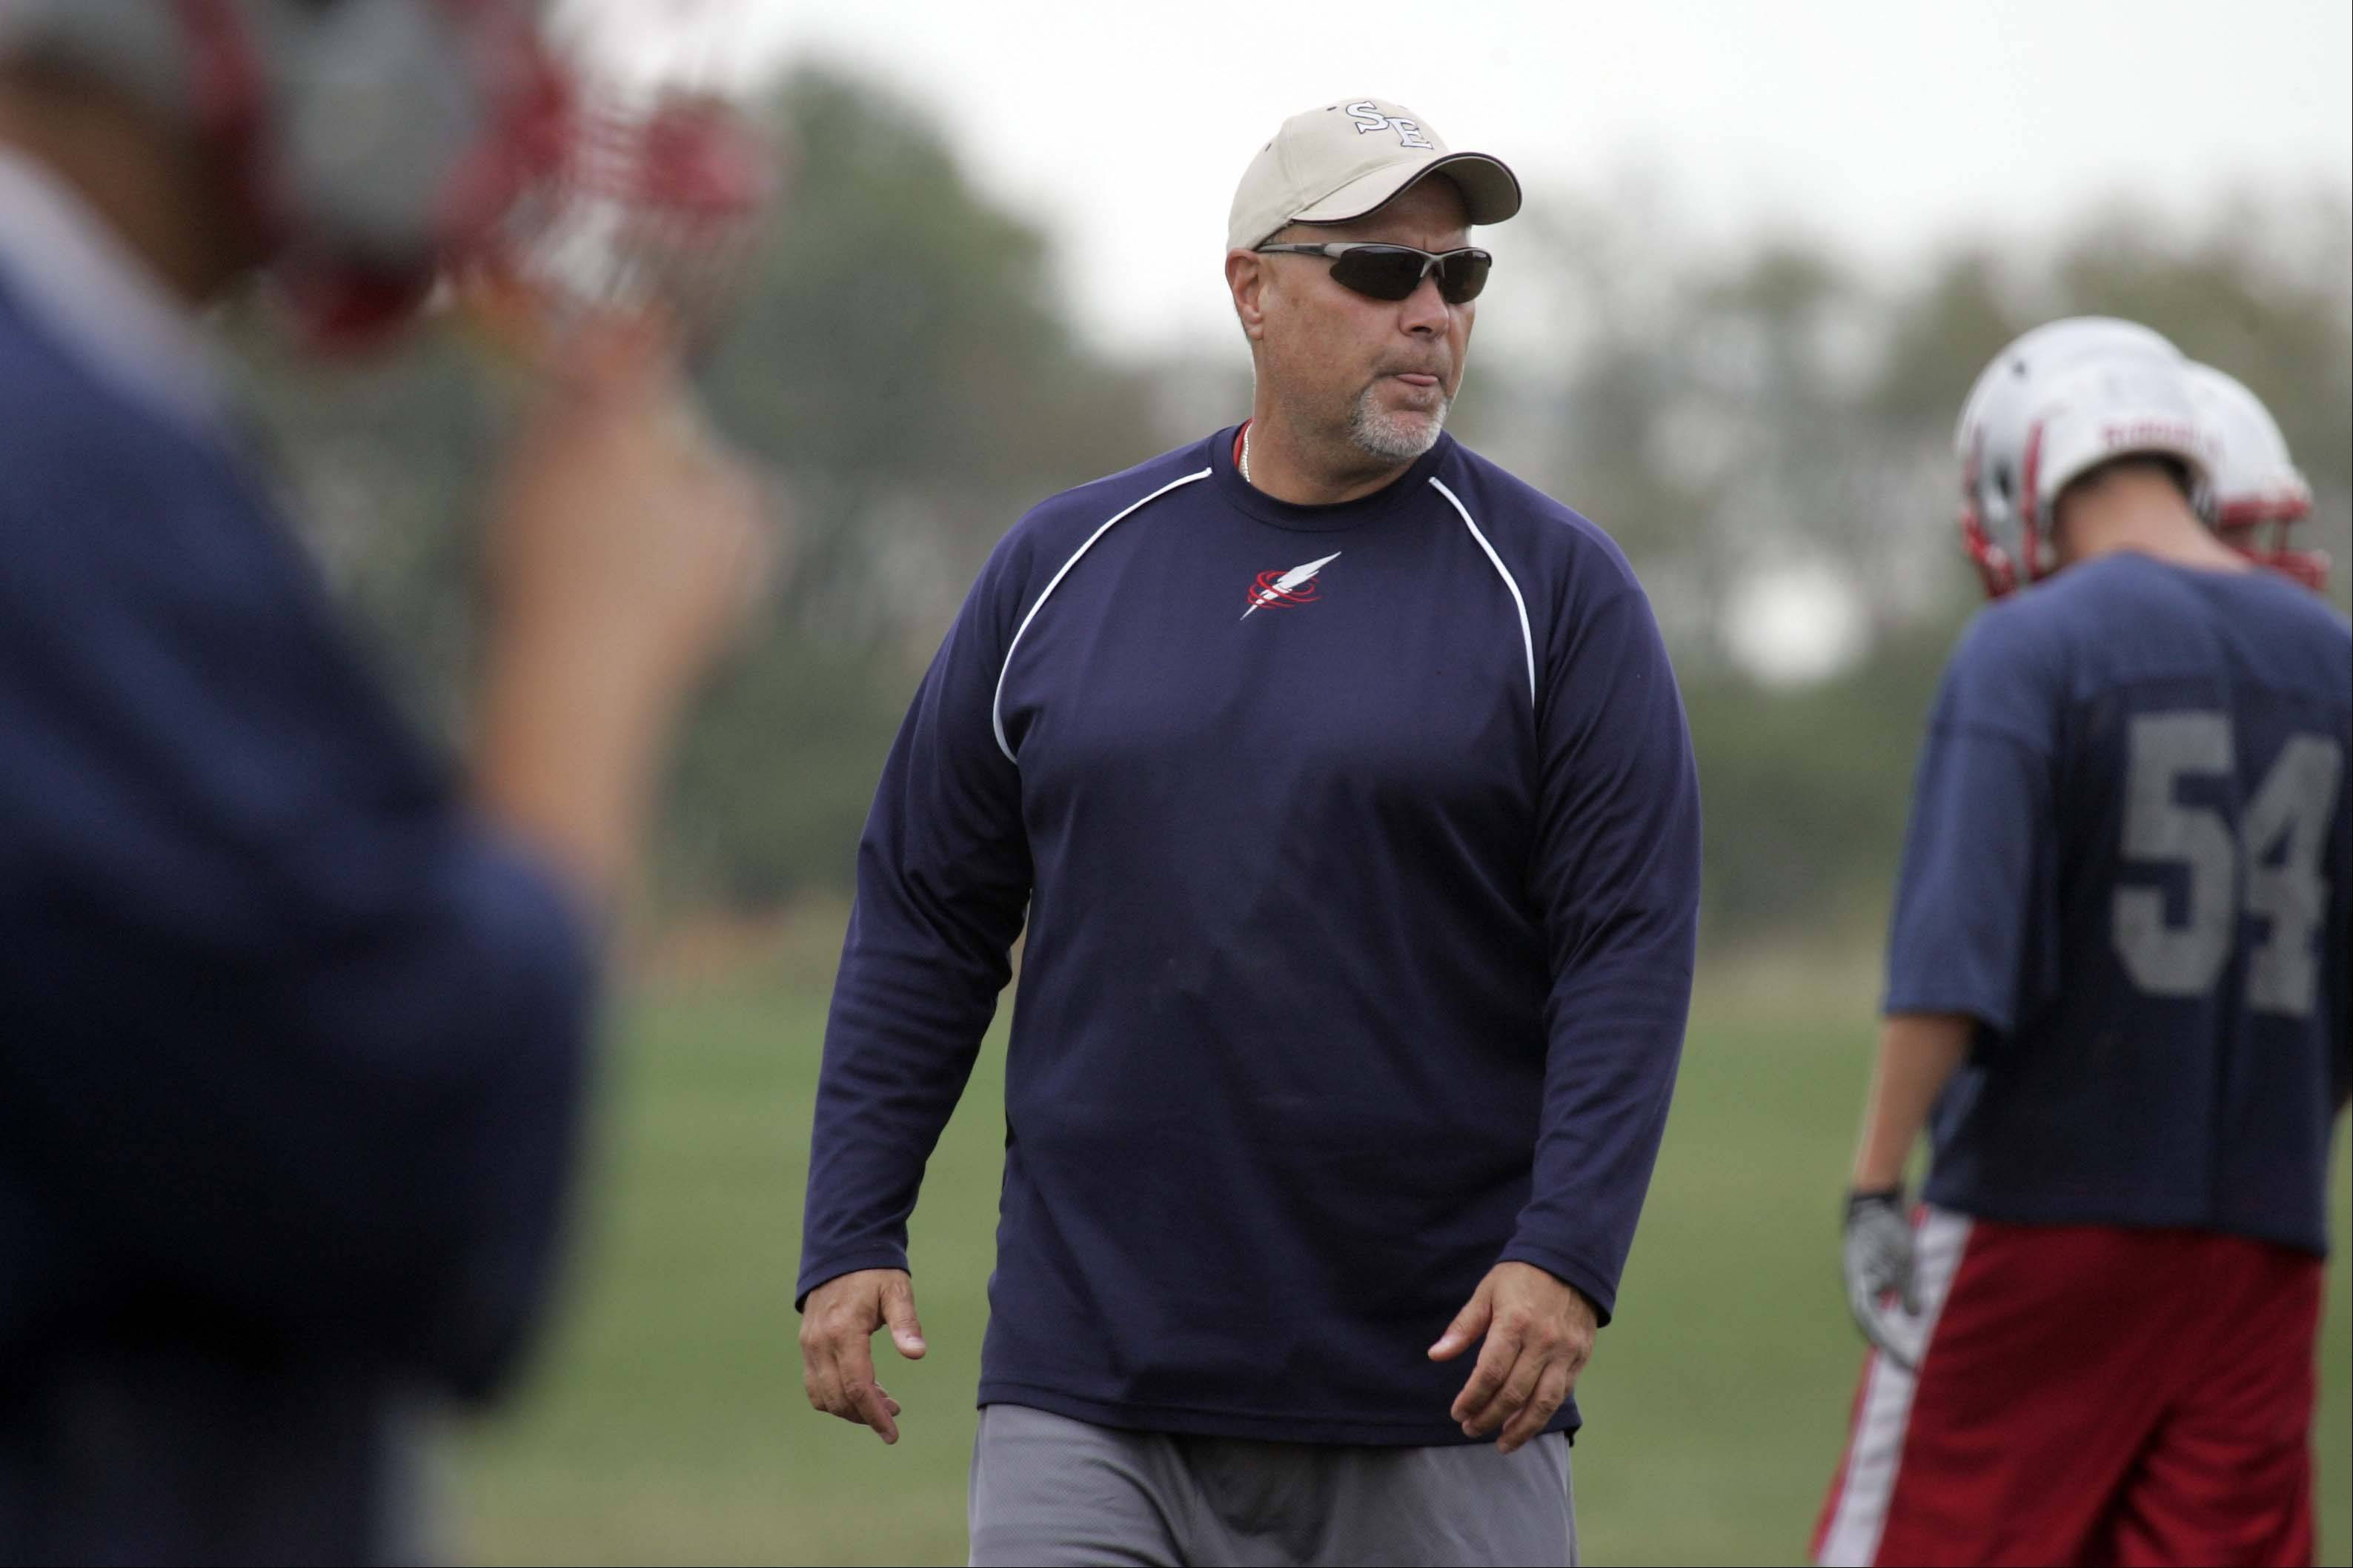 Coach Dale Schabert works with his team at South Elgin High School.